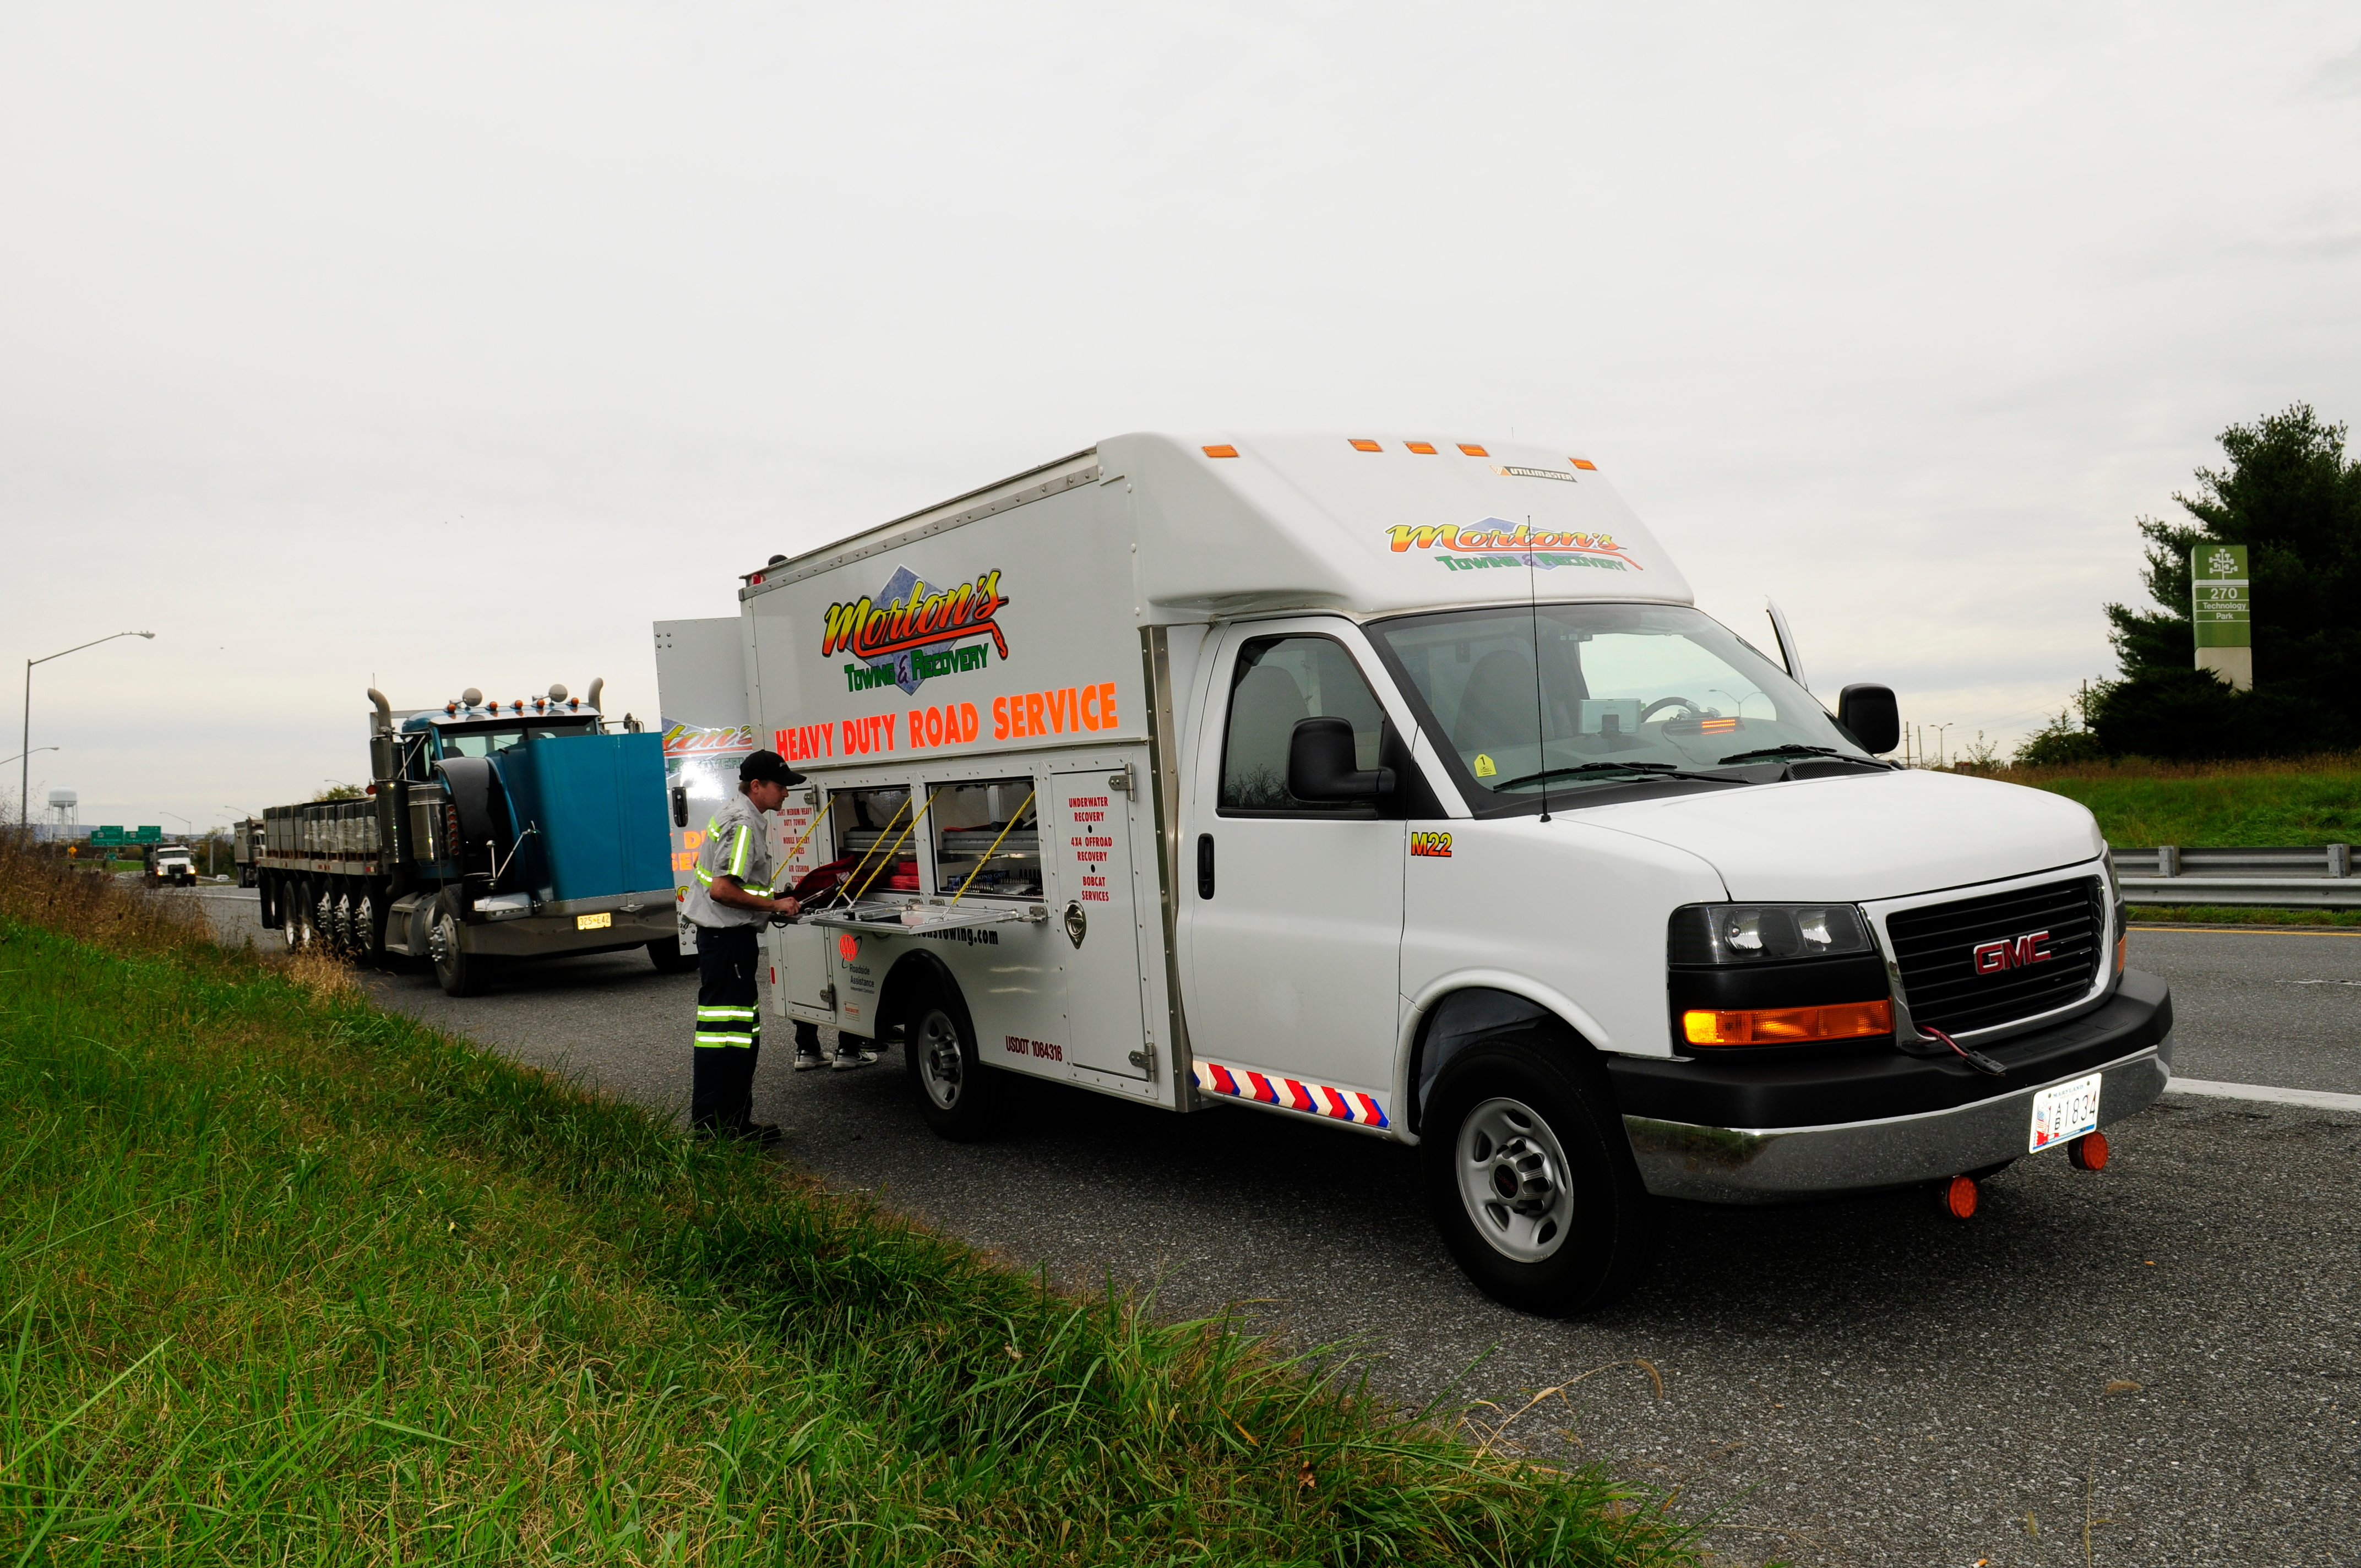 Morton 39 s towing recovery in laurel md autos motor for Route 1 motors inc laurel md